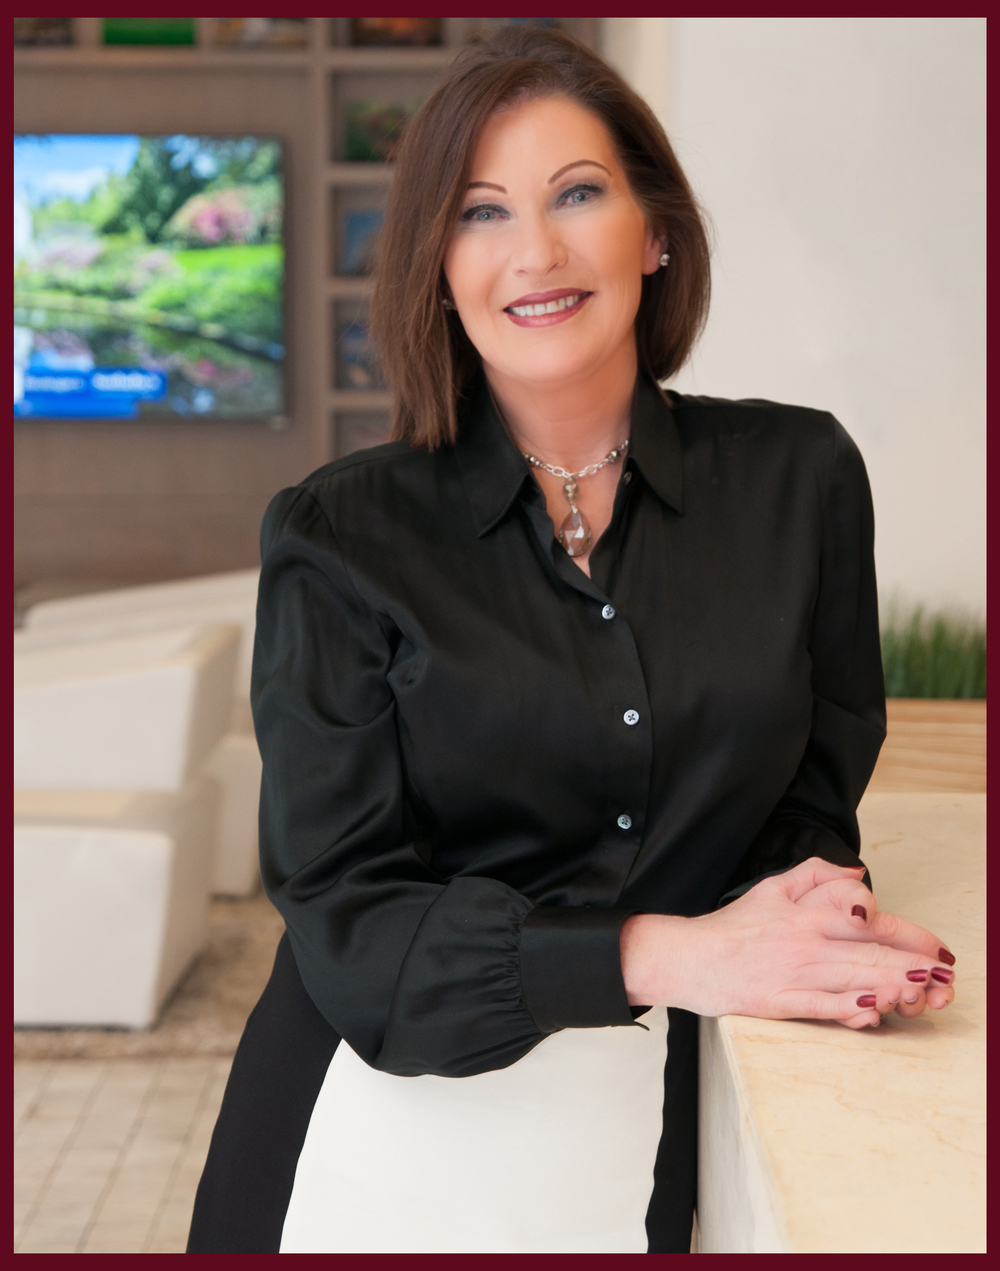 Vicki Jackson   Founding Eastside Broker New Construction, Residential Homes, Condominiums & Townhomes, Vacant Land, Waterfront, Commercial +1 206 930 8956